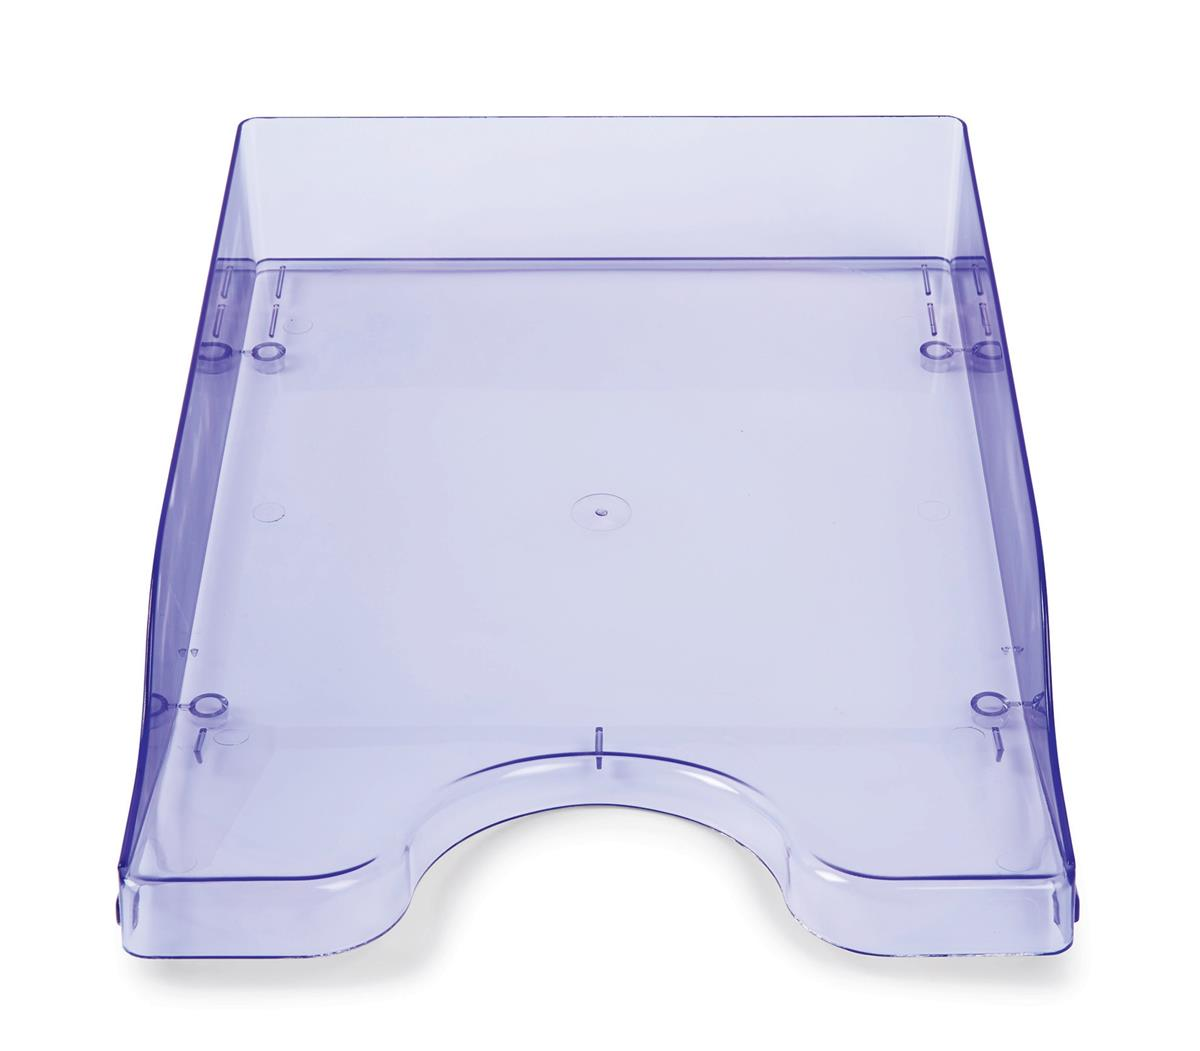 Continental Letter Tray Polystyrene for A4 Foolscap and Computer Printouts Ice Purple